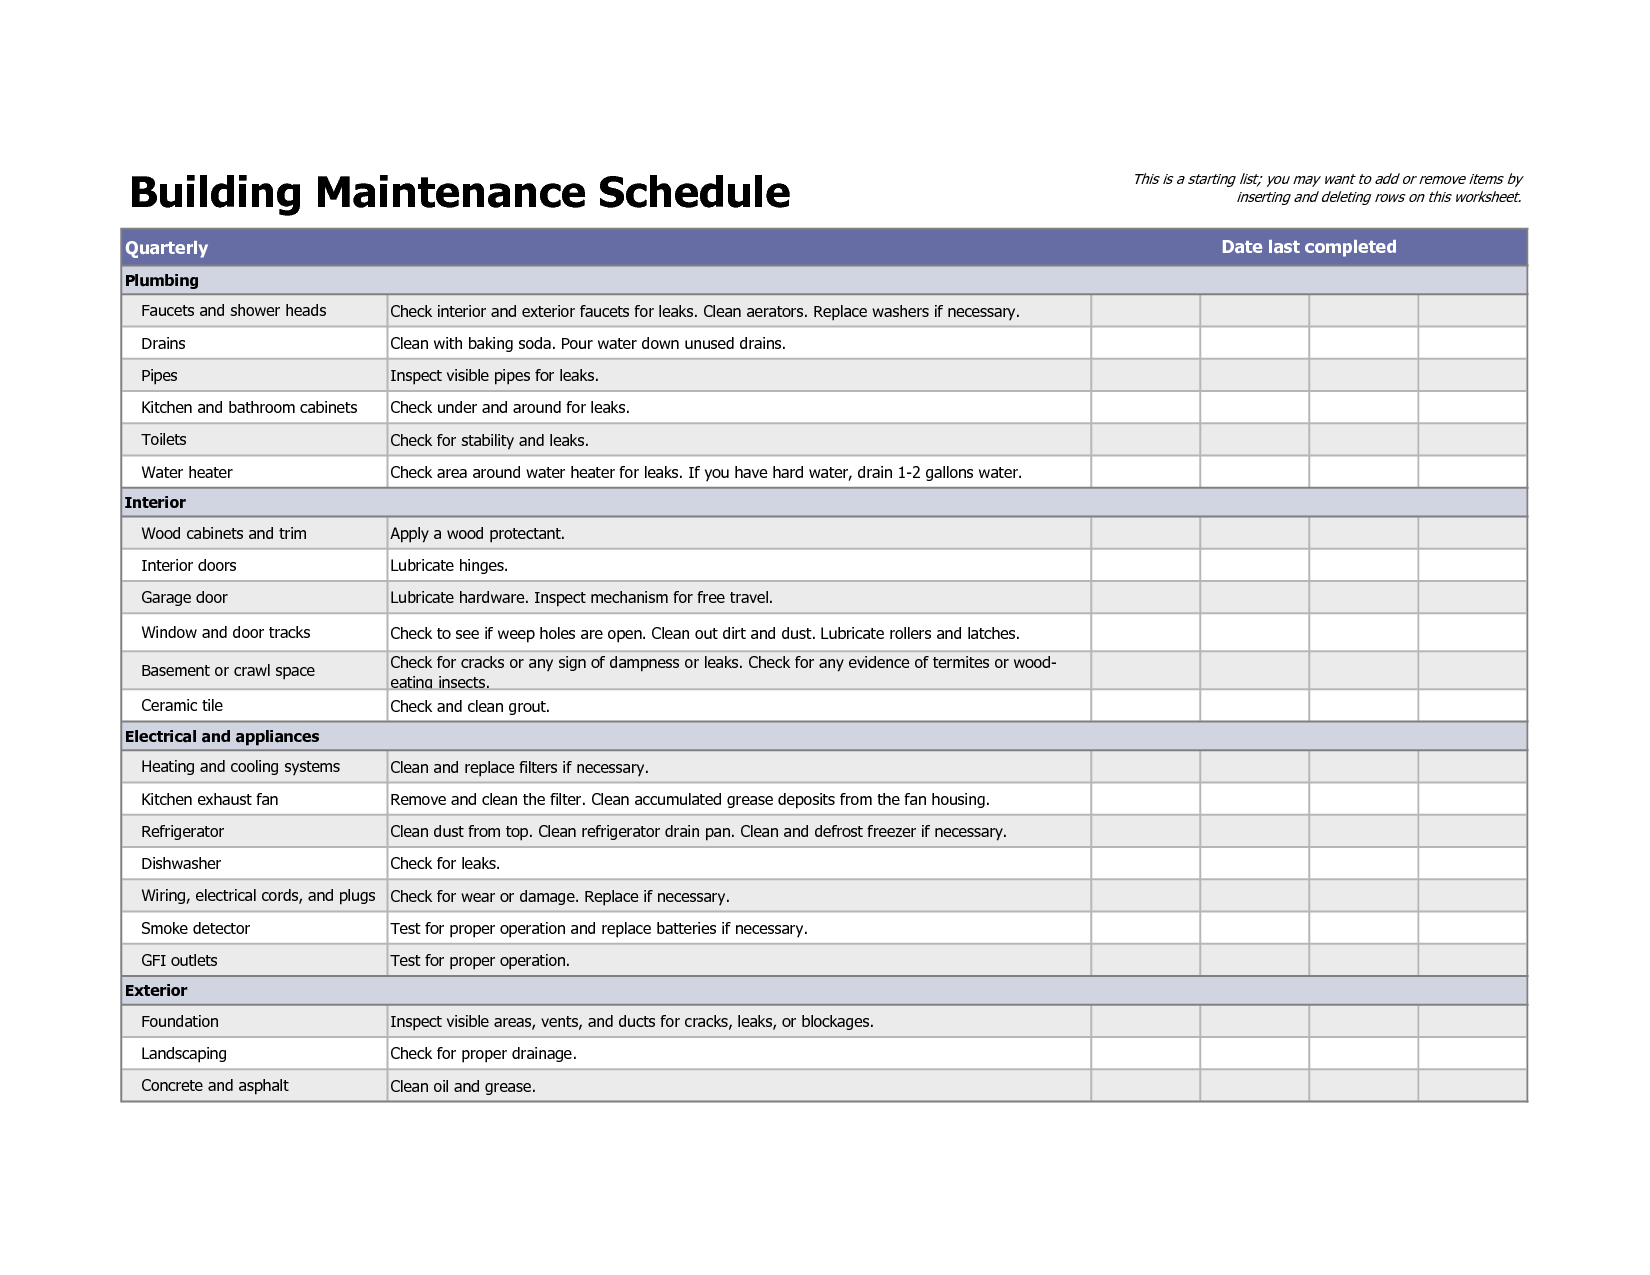 Building maintenance schedule excel template home maintenance pinterest building - Reasons always schedule regular home inspection ...